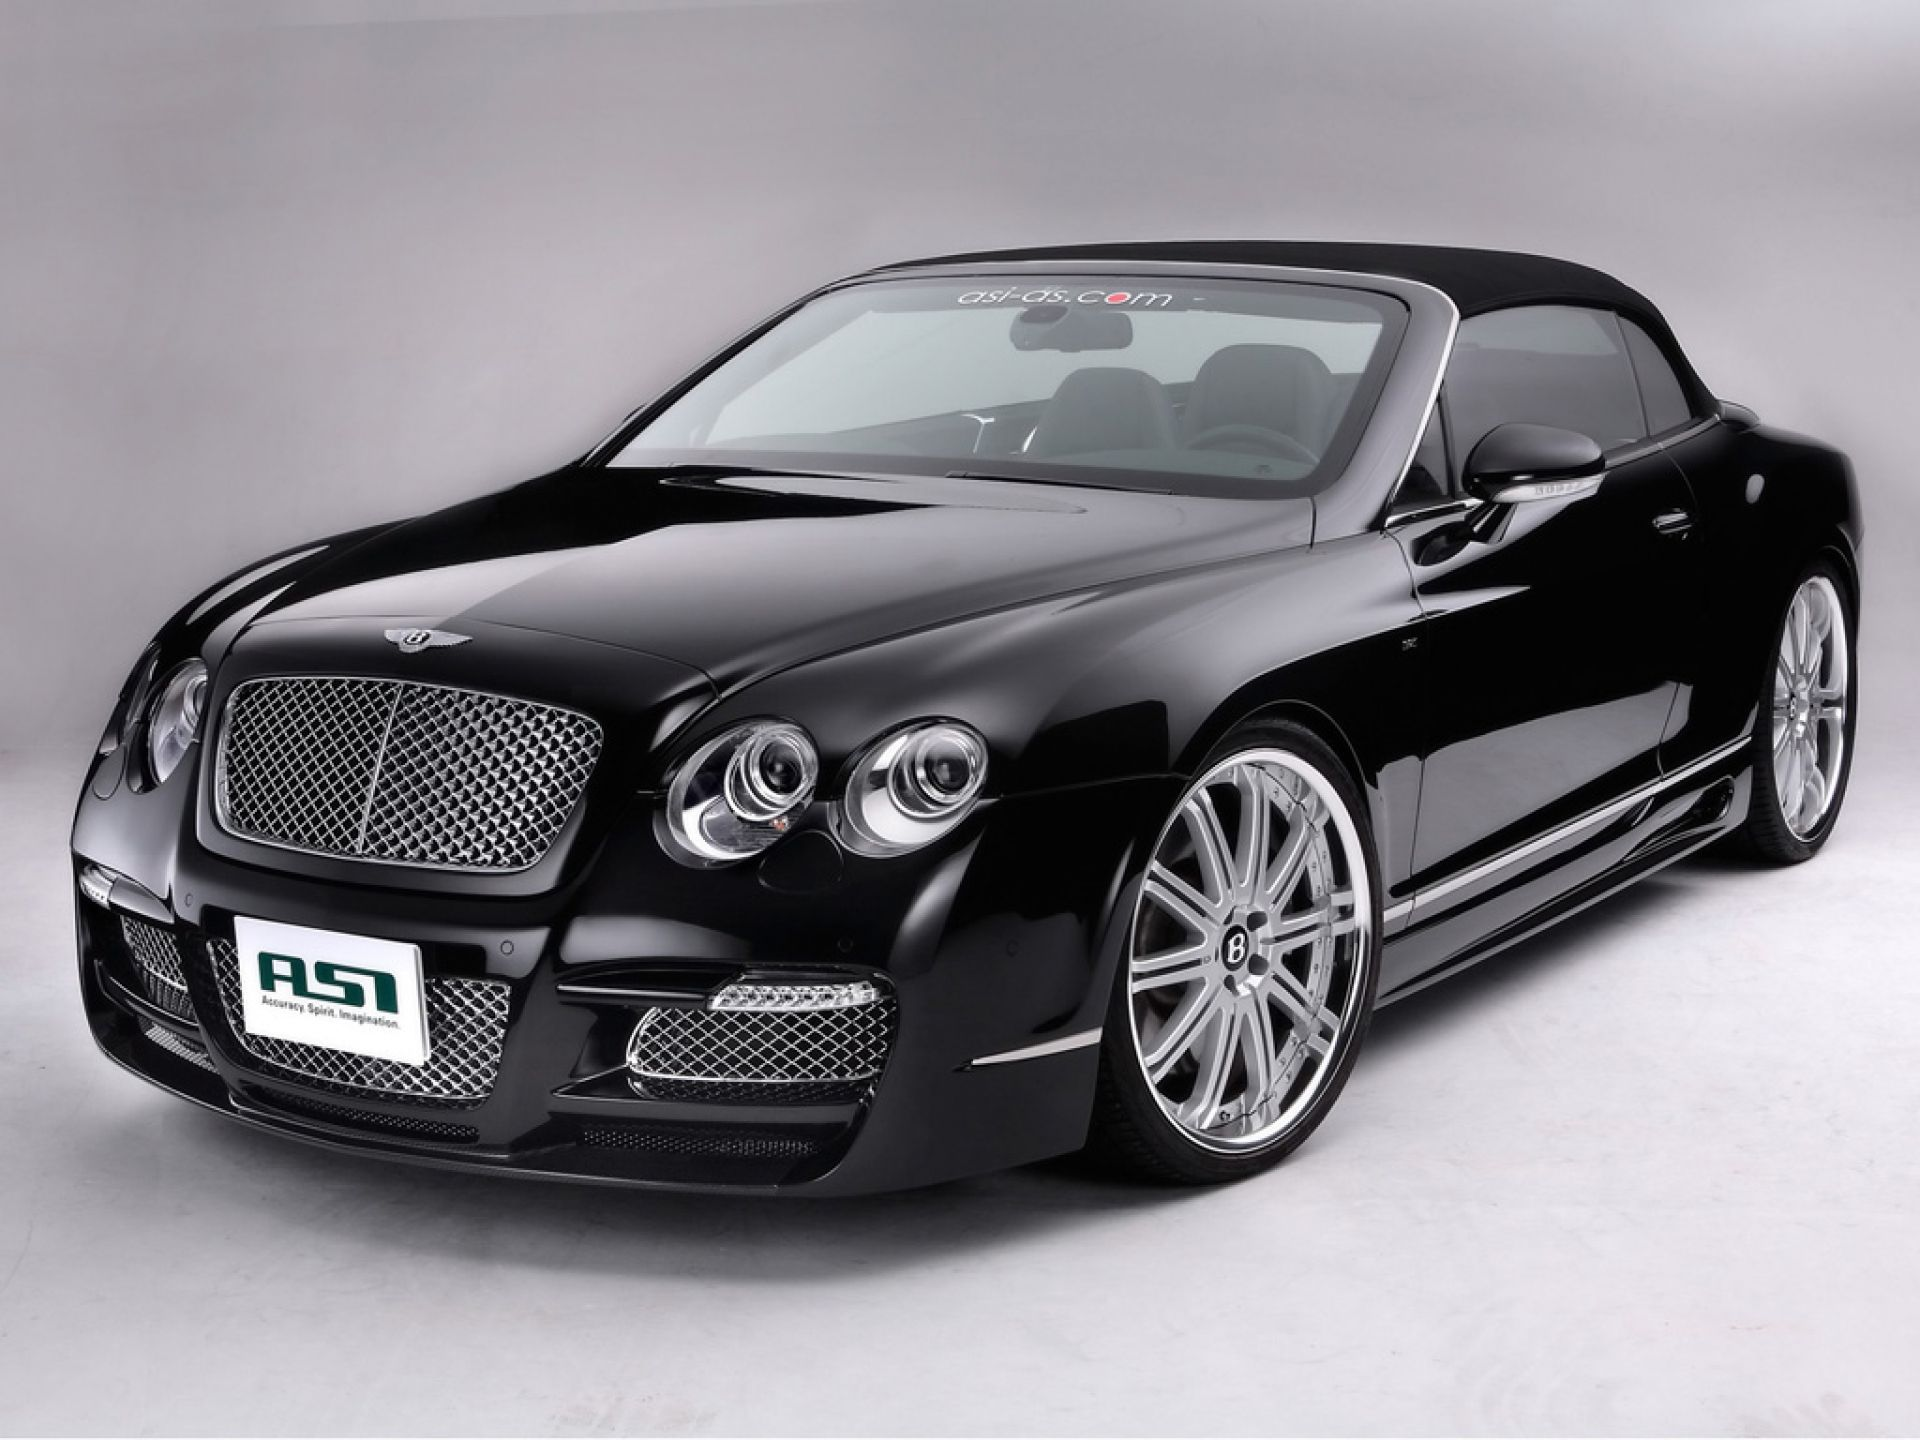 price paid bentley value prices continental image sale new used placeholder generic car